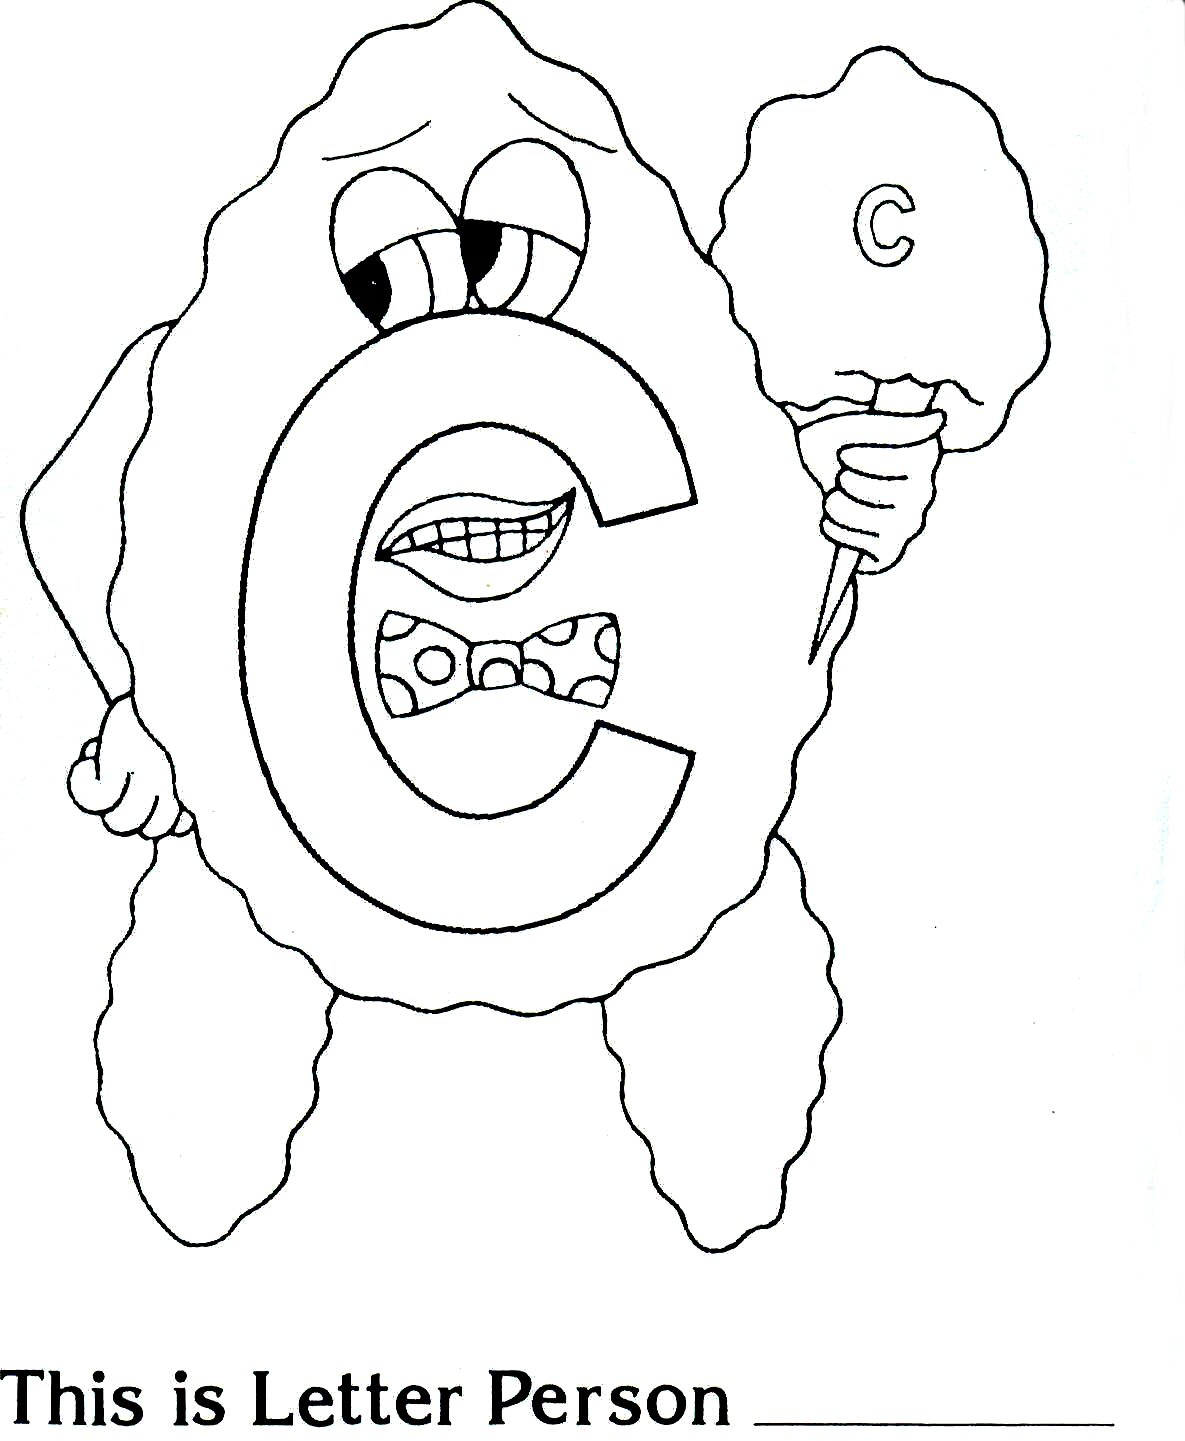 letter people free coloring pages - photo#4